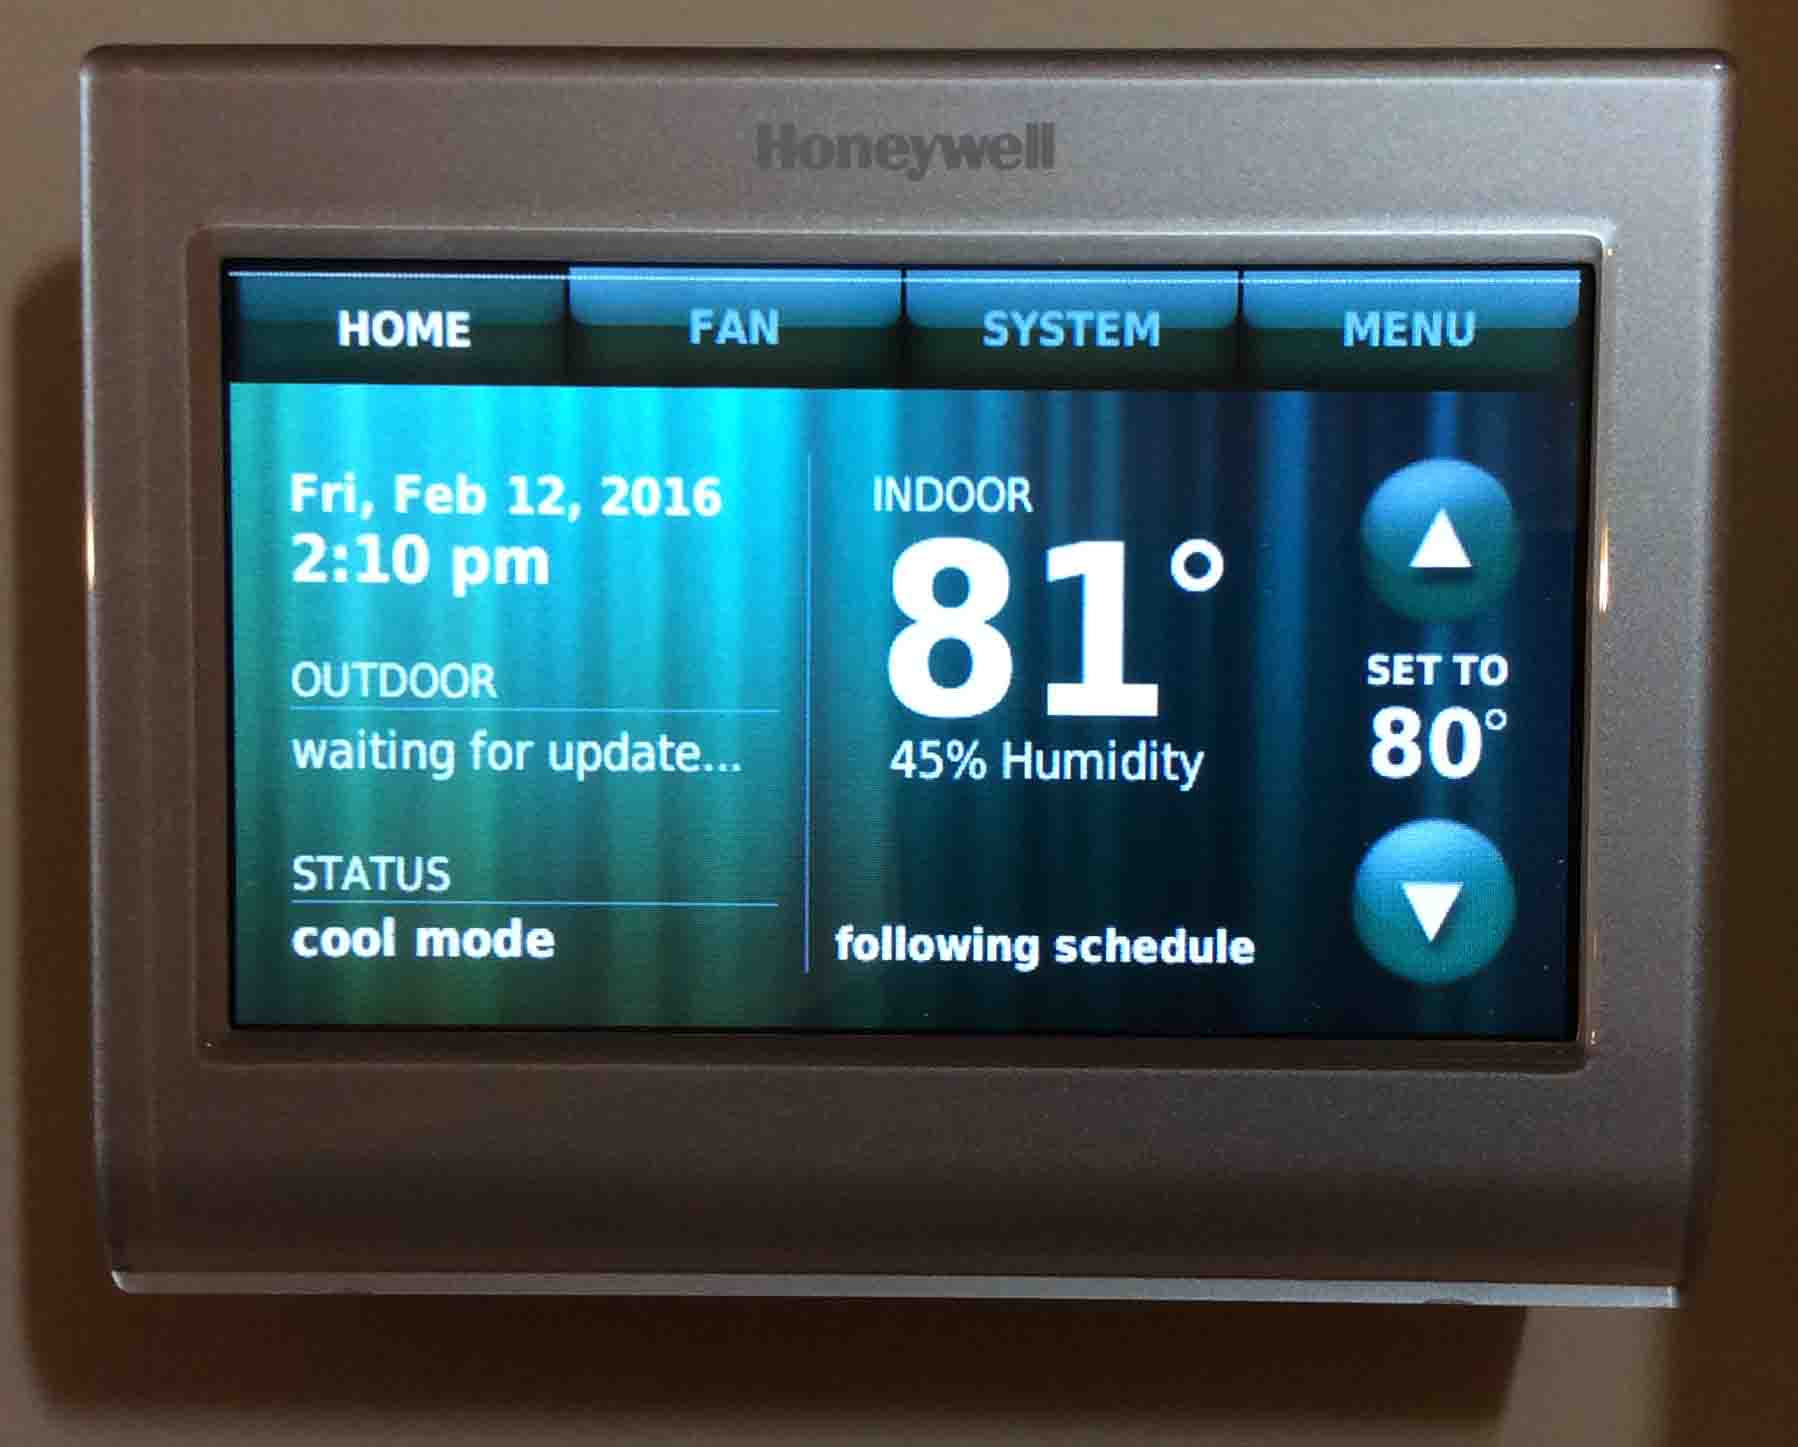 Manual Honeywell Thermostat 50018270 001 Wiring Library 2012 Honda Pilot Aux Fuse Box Location Not Cooling Down How To Fix Toms Tek Stop